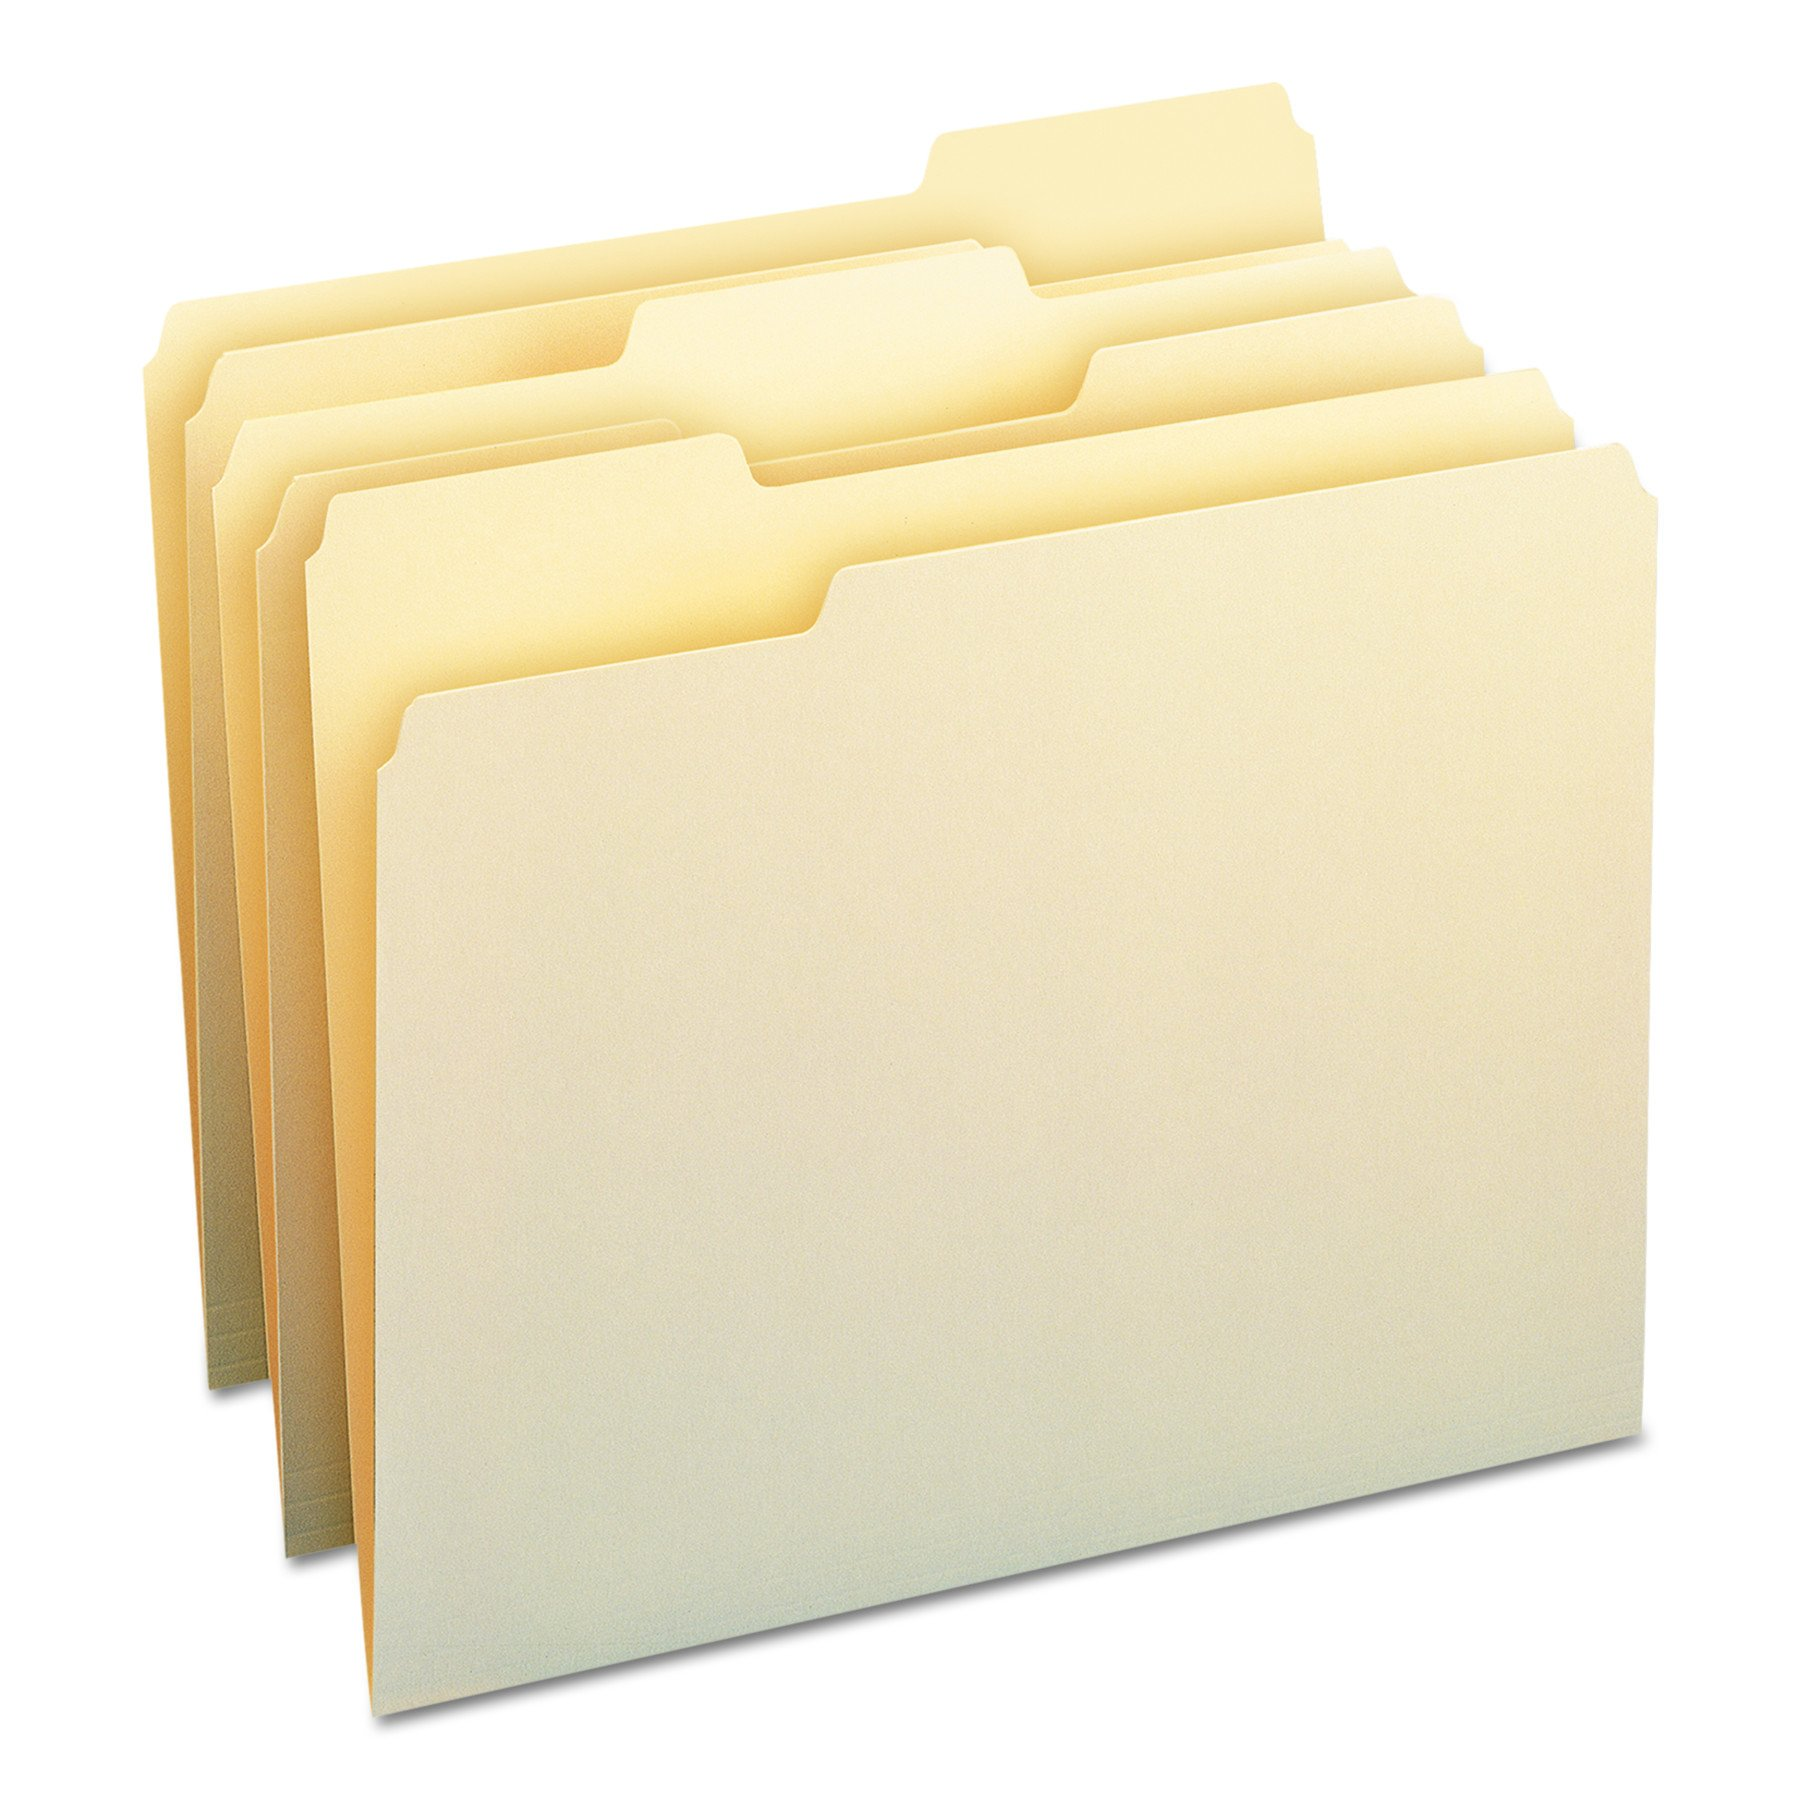 Smead File Folder, 1/3-Cut Tab, Letter Size, Manila , Assorted Positions, 100 Per Box (10330)